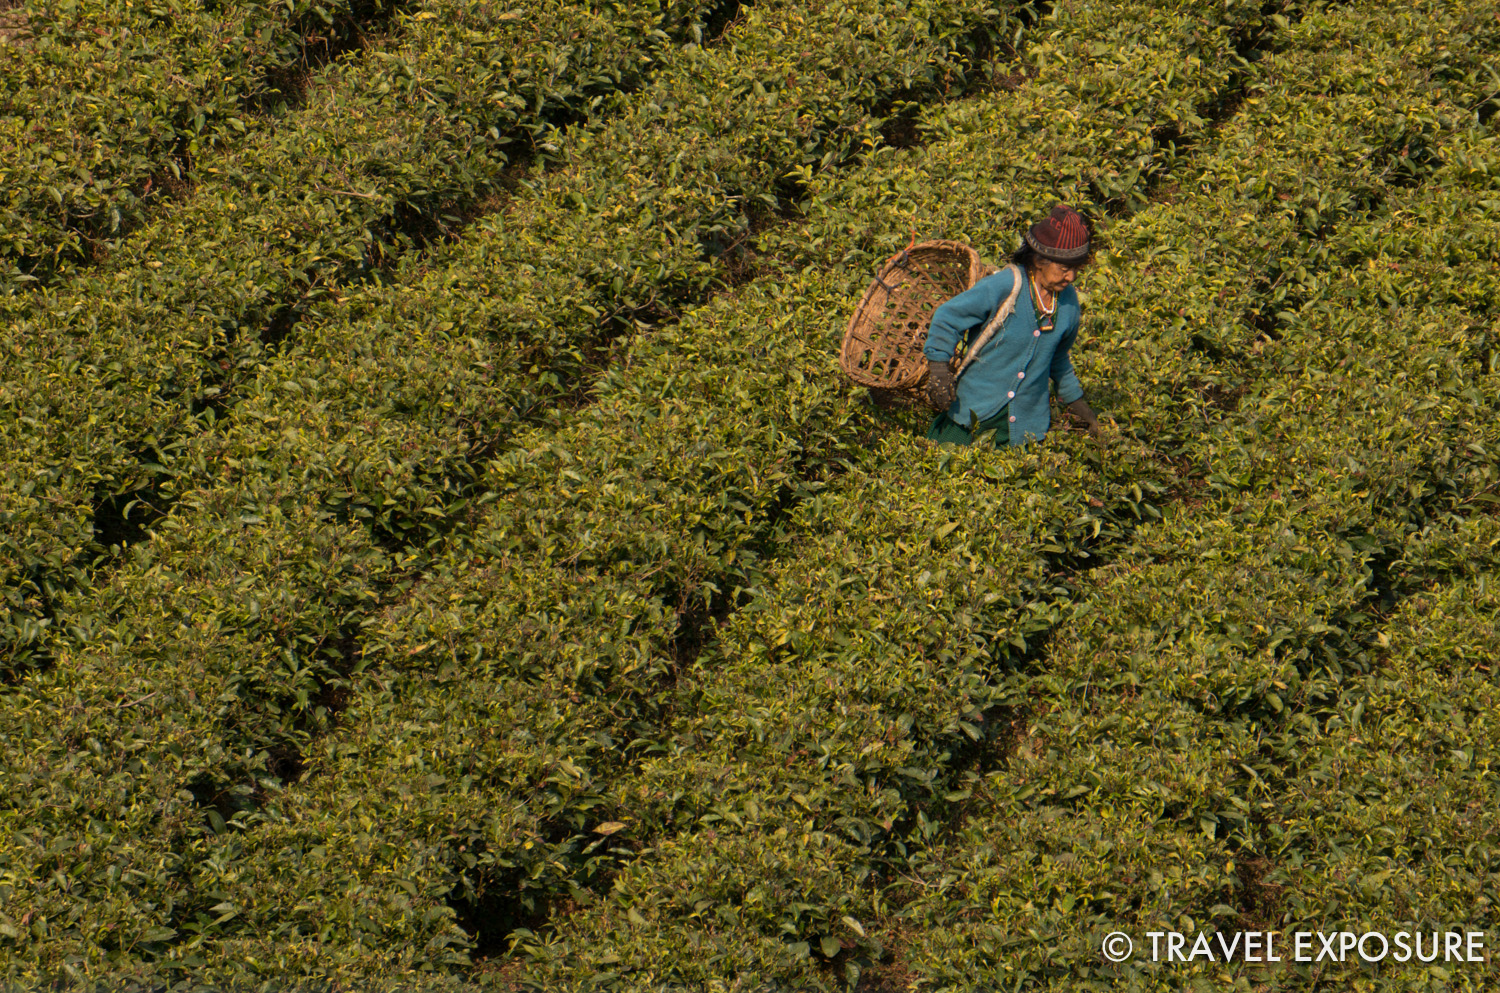 WEEK OF MARCH 10  A woman tends to the tea bushes at Temi Tea Garden in Sikkim, India - considered one of the best in the world.